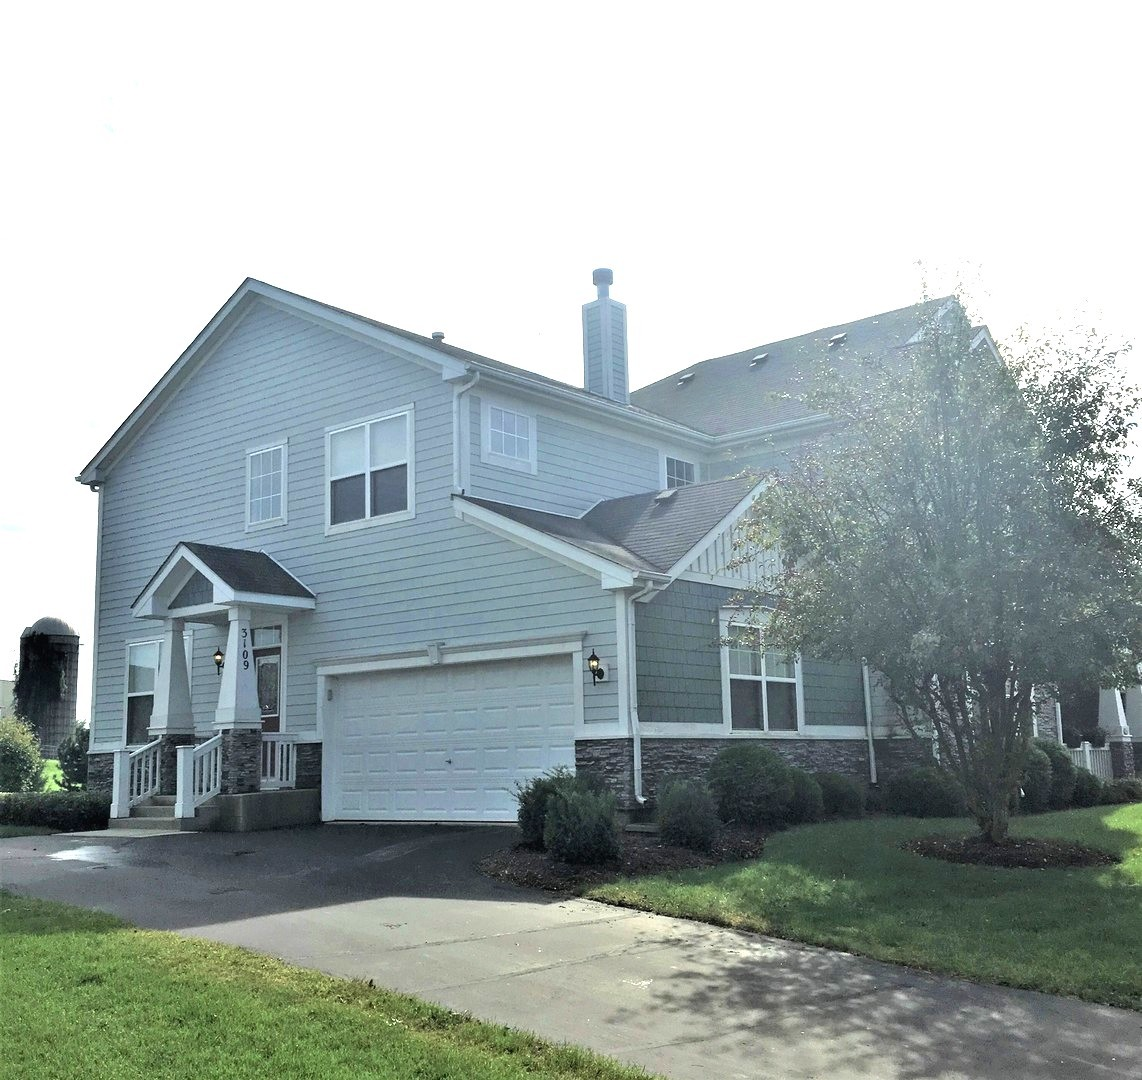 3109 Kyra Lane, Elgin in Kane County, IL 60124 Home for Sale